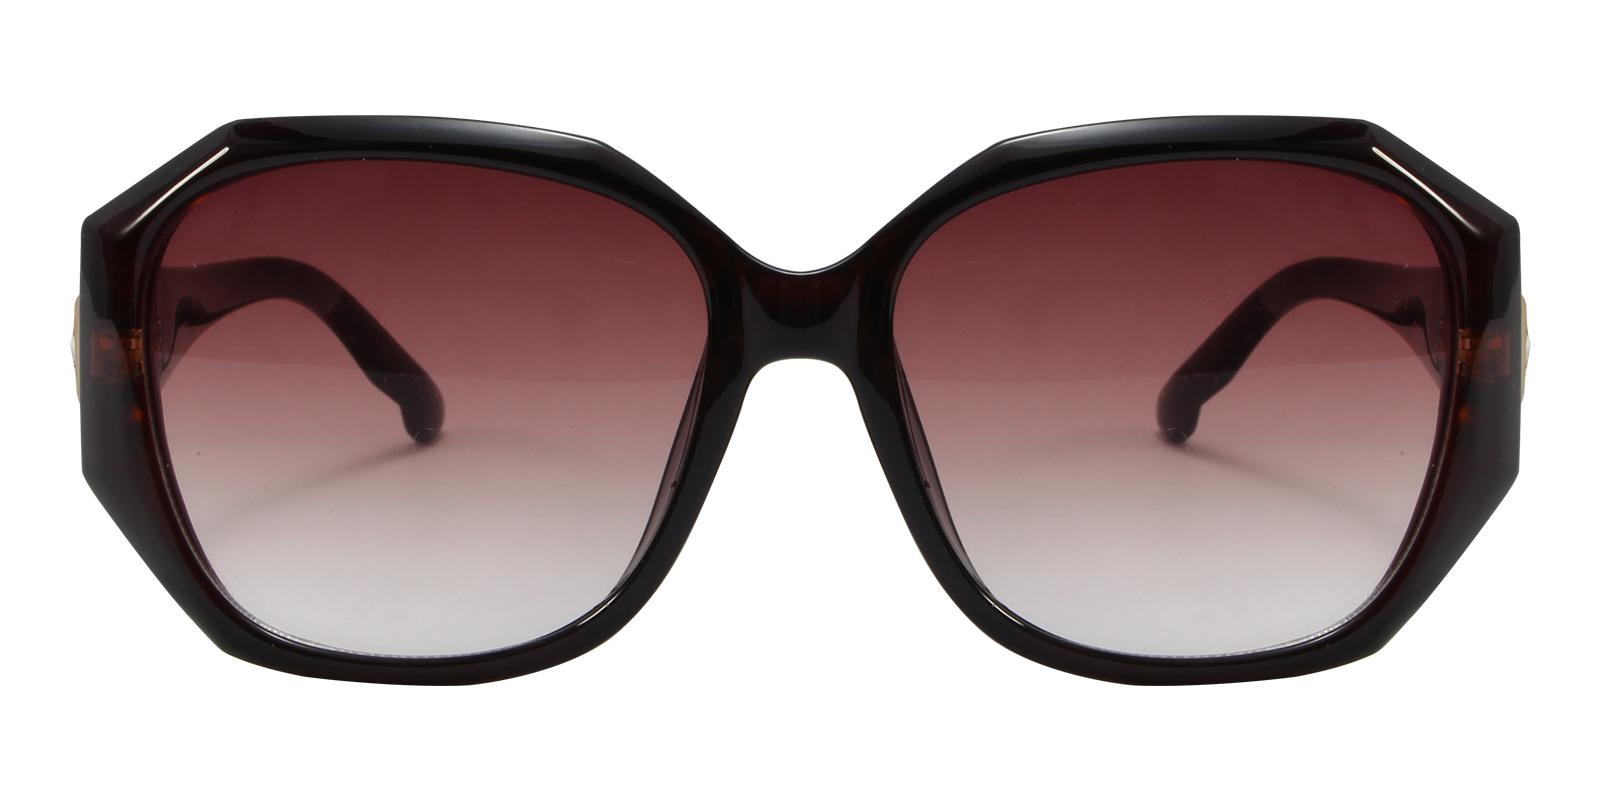 Saturn Brown Acetate Sunglasses , UniversalBridgeFit Frames from ABBE Glasses